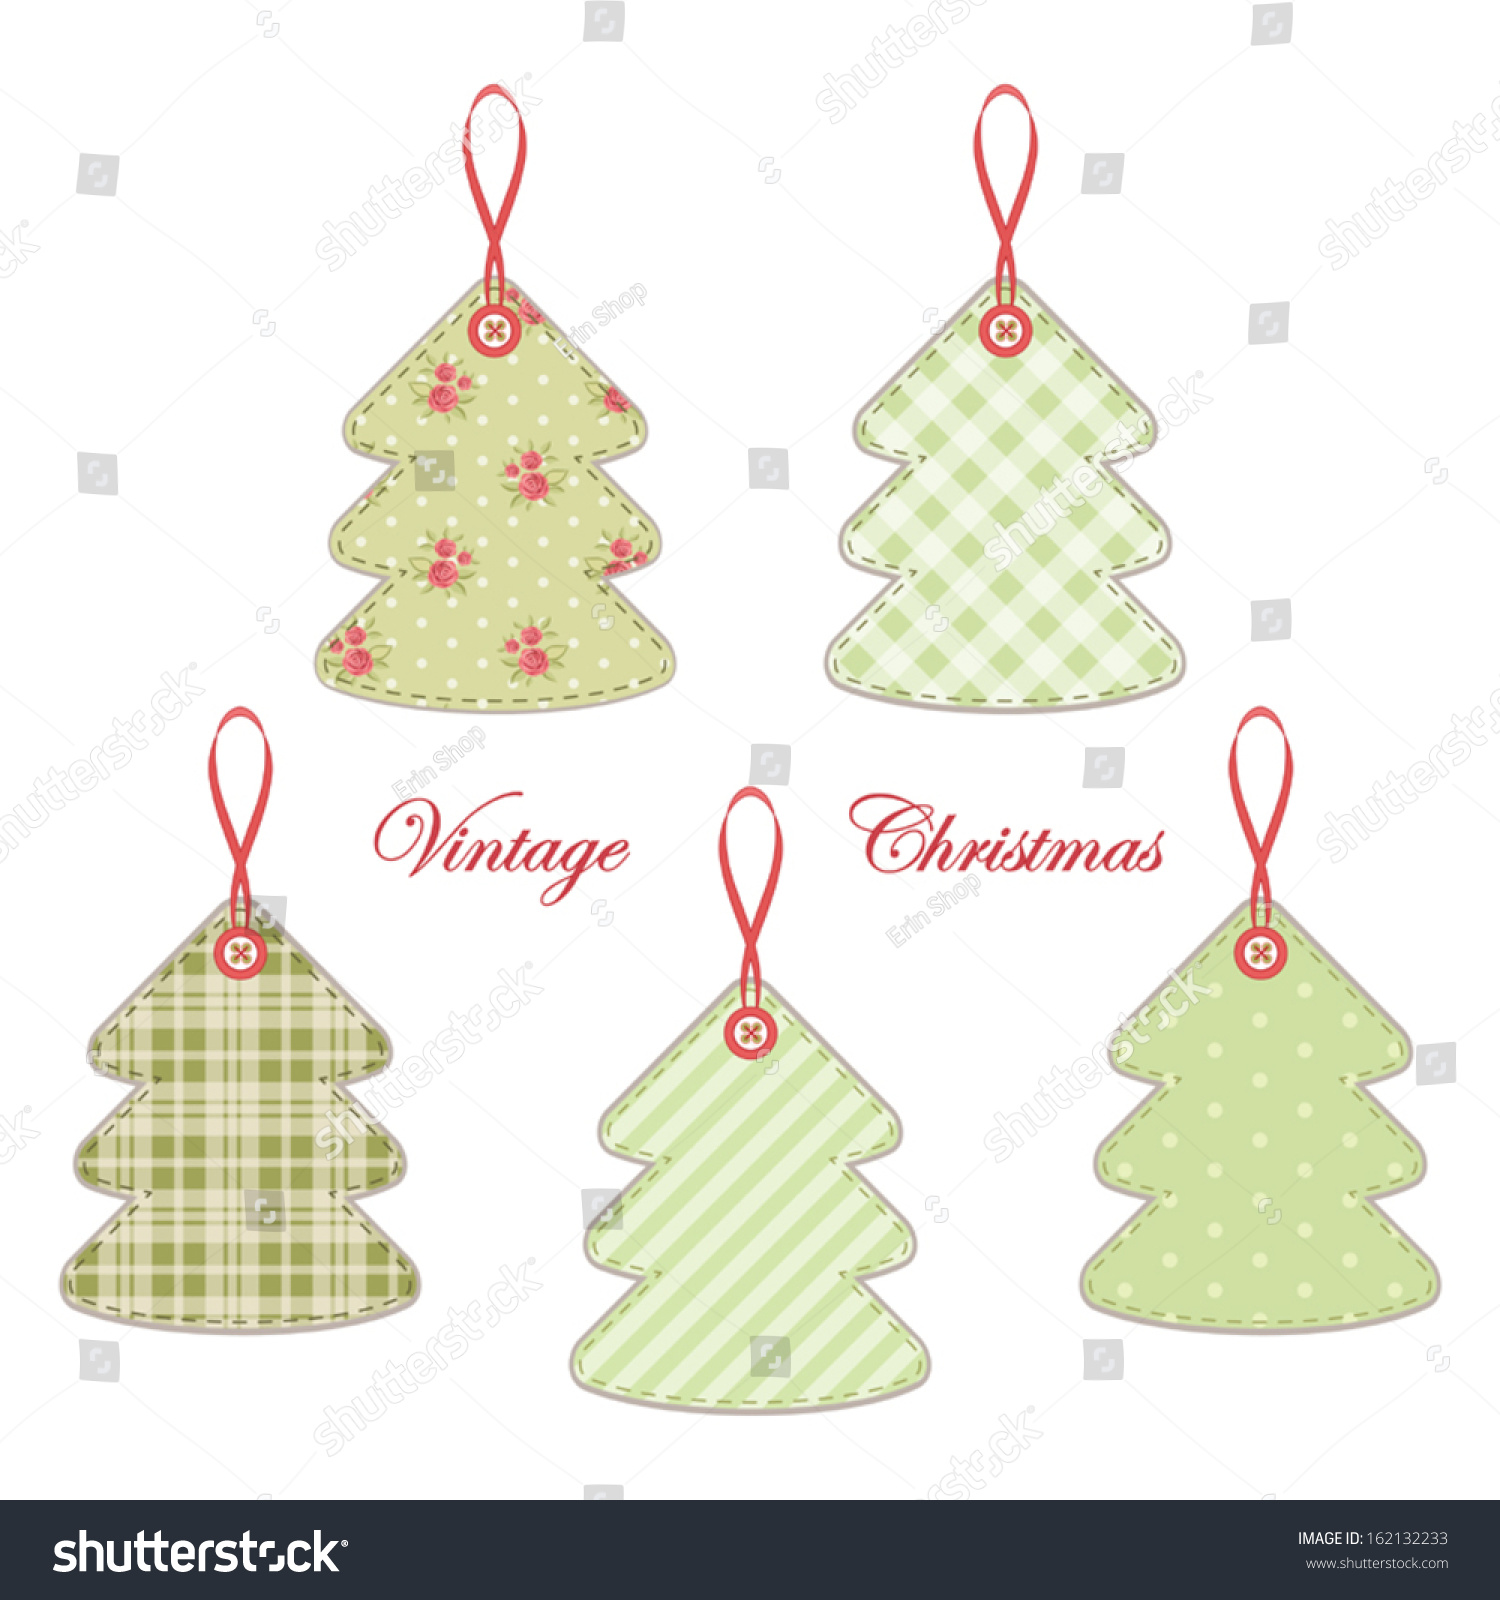 Vintage Christmas Trees Shabby Chic Style Stock Vector Royalty Free 162132233